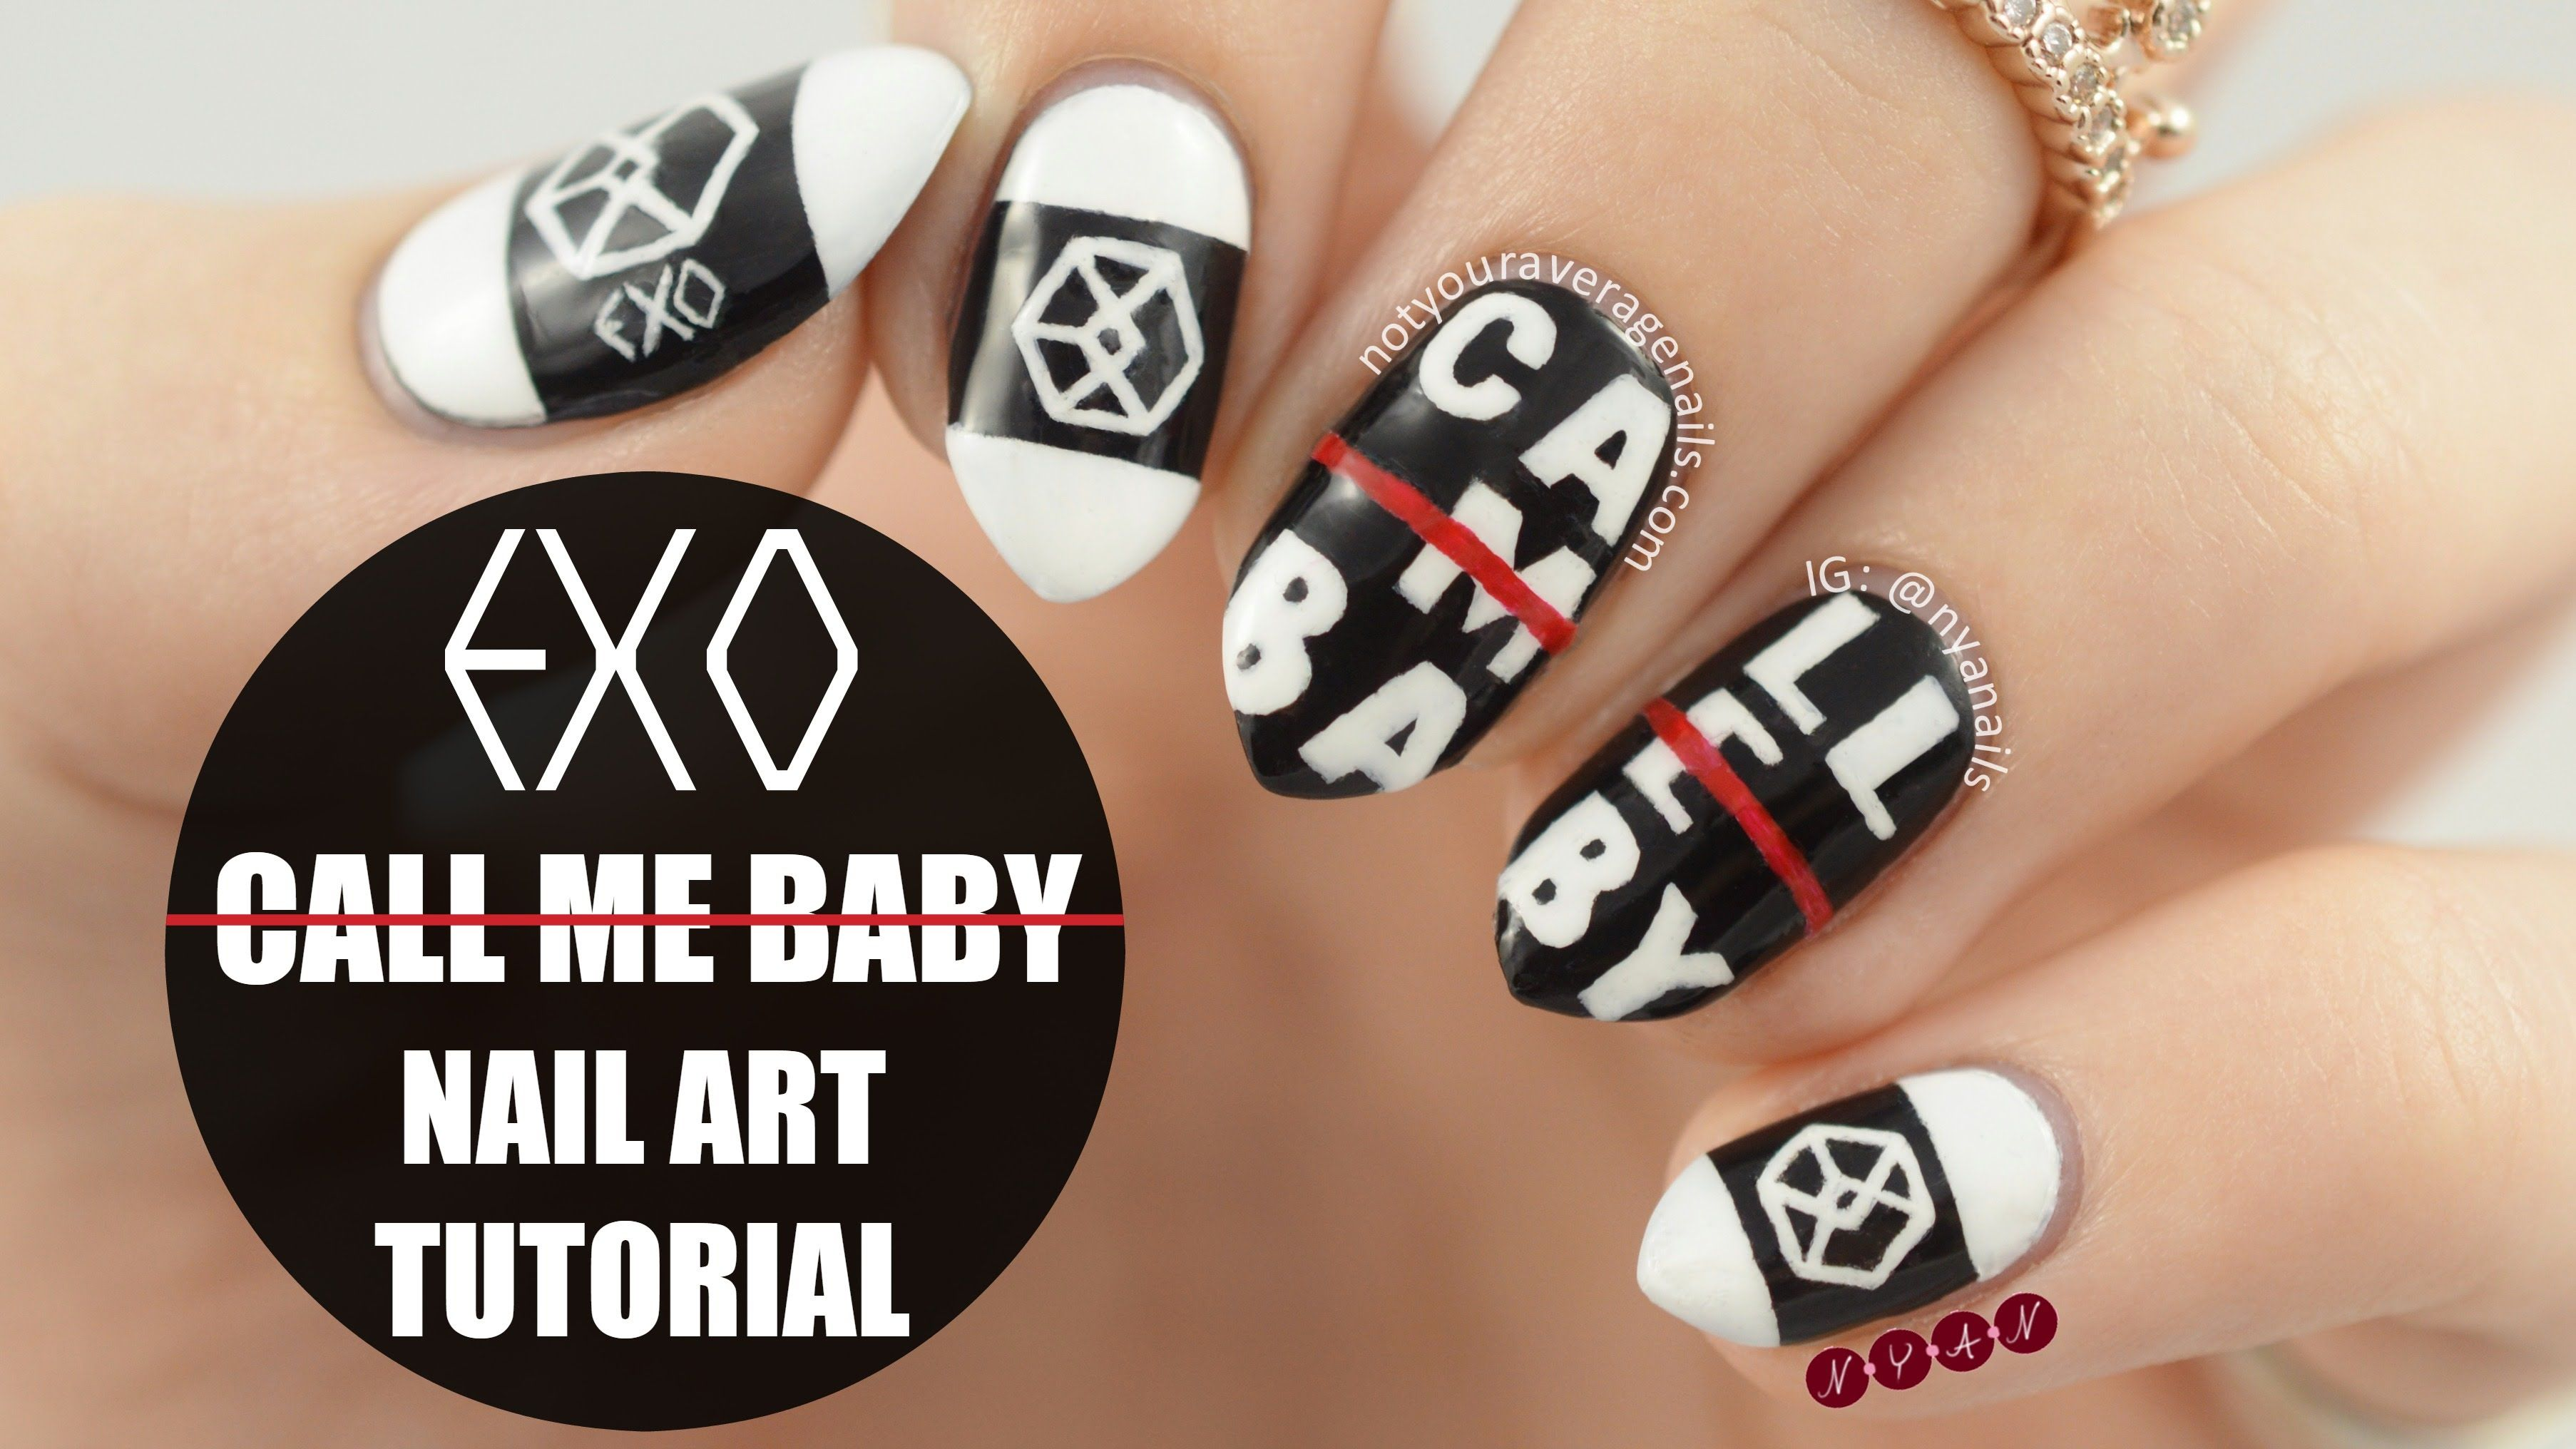 EXO #CallMeBaby Inspired Nail Art Tutorial | NAILed It | Pinterest ...